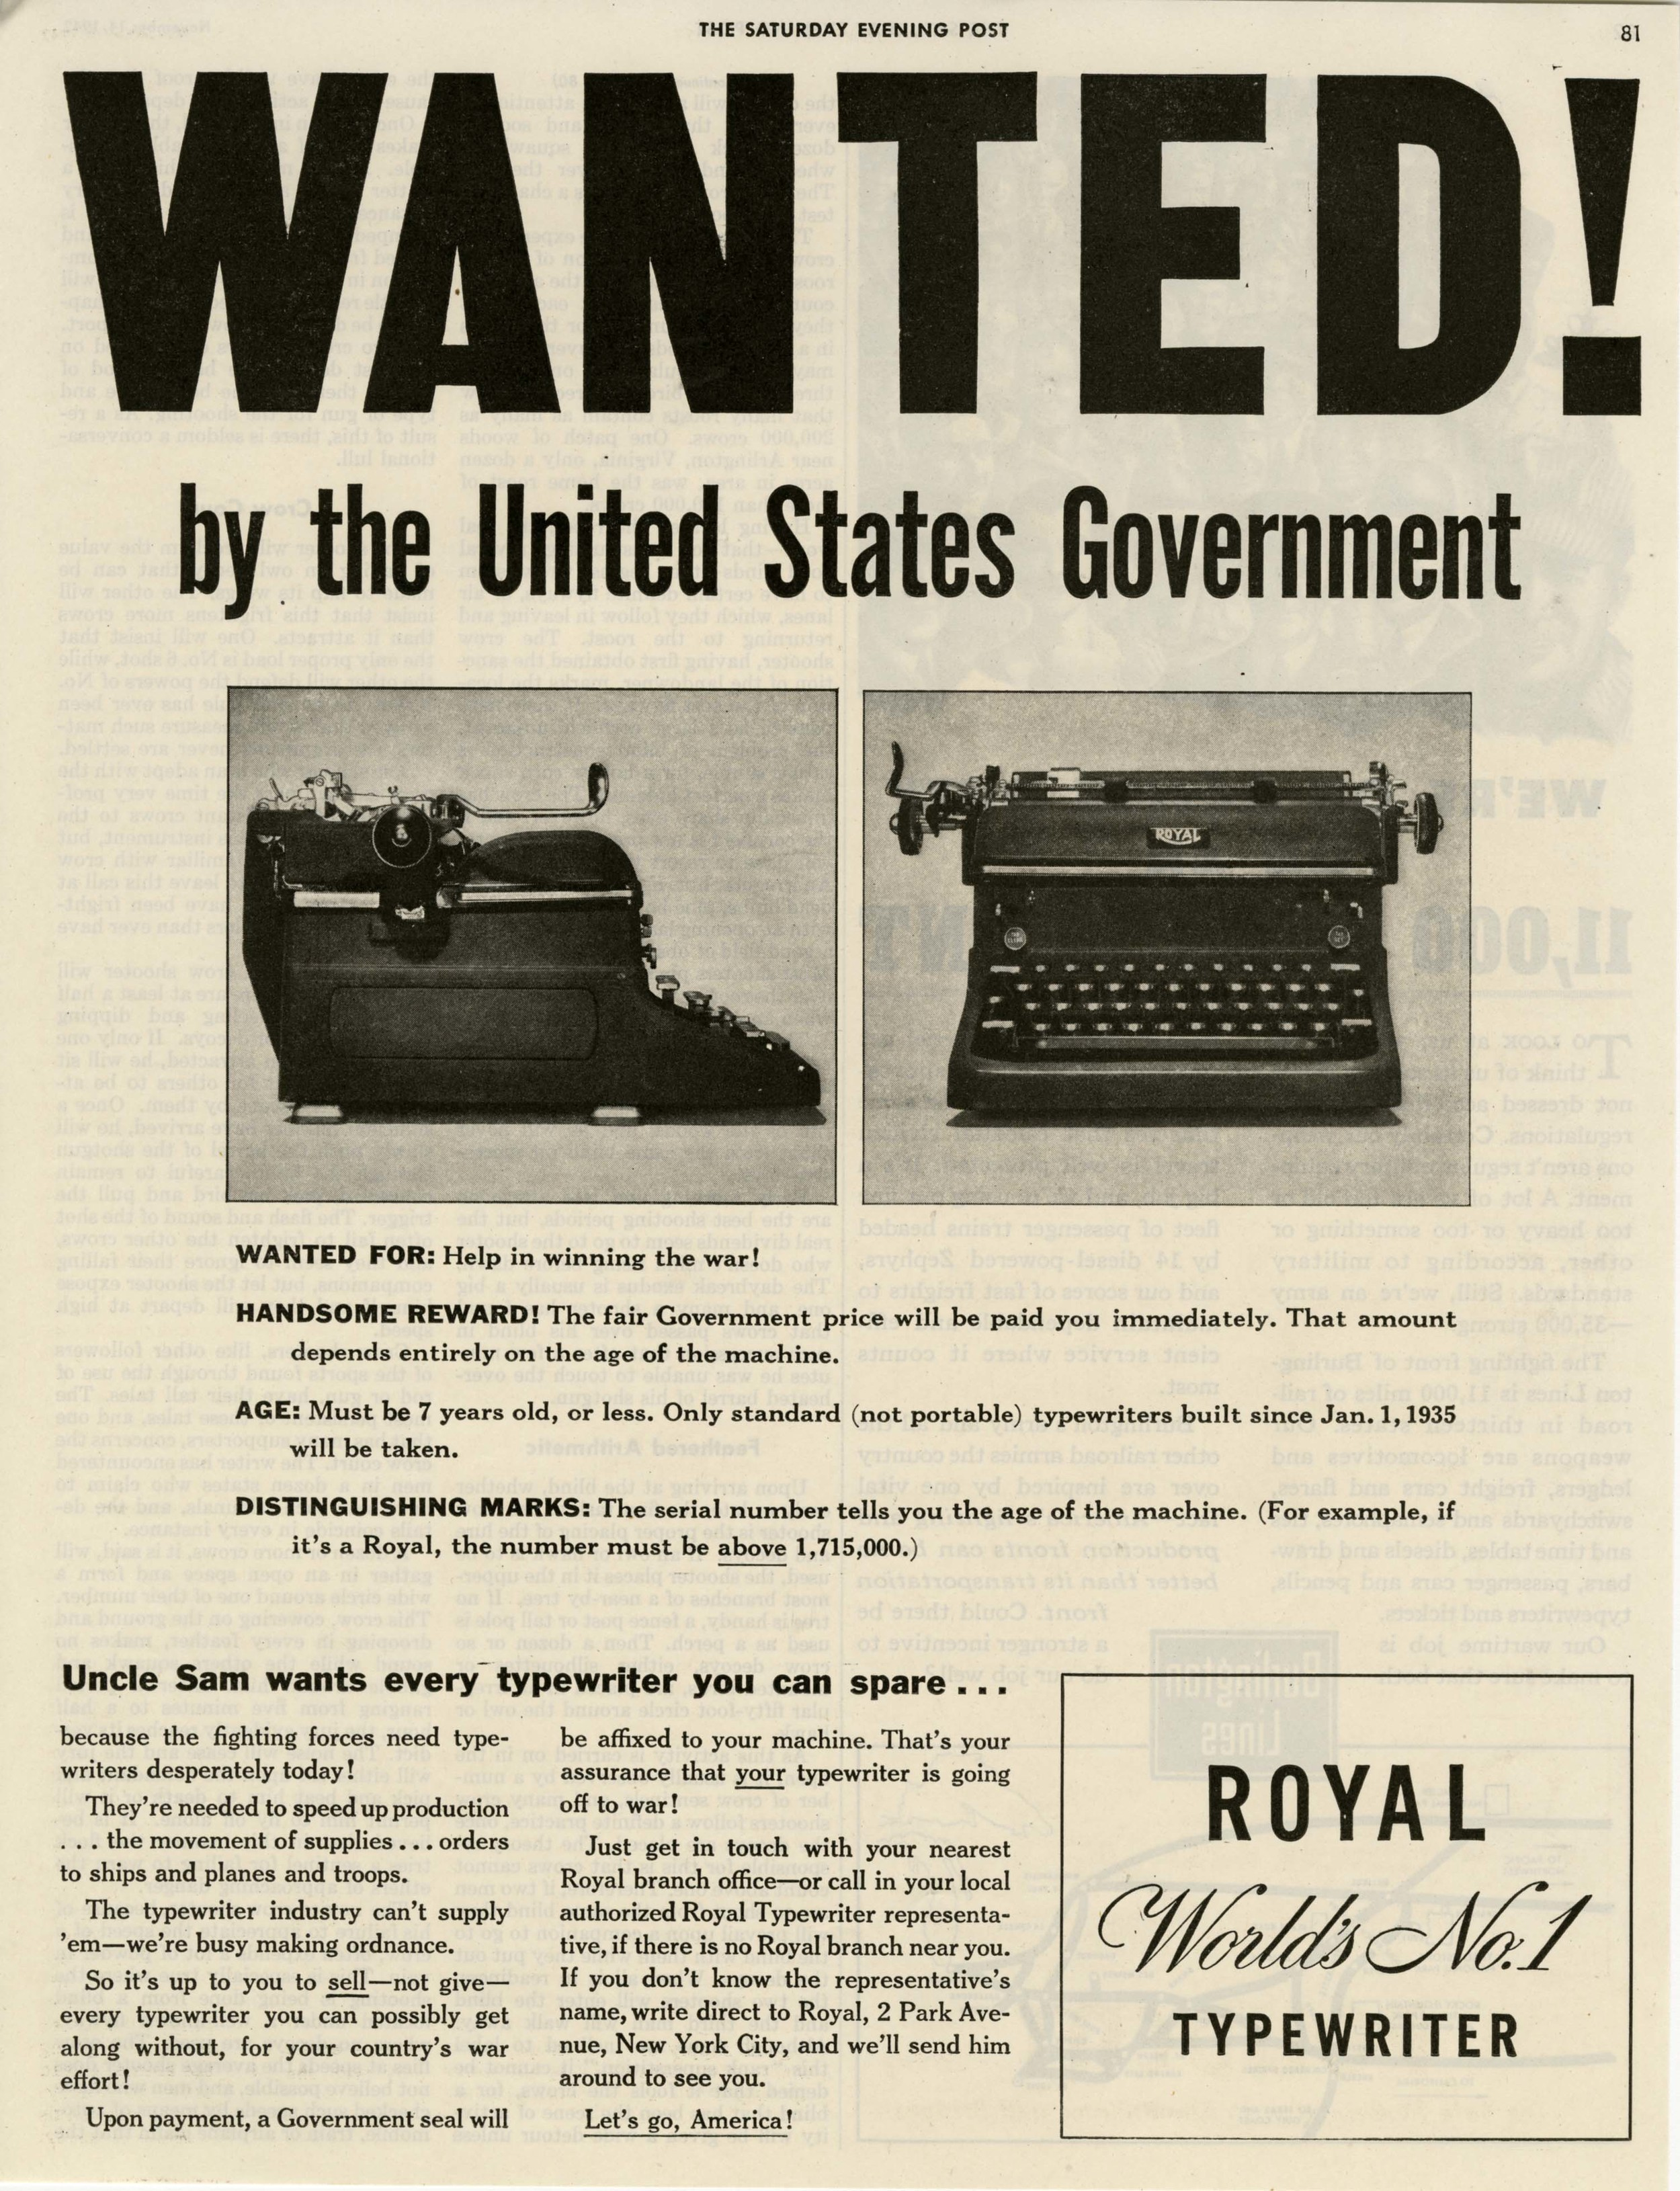 Uncle Sam wants every typewriter you can spare.